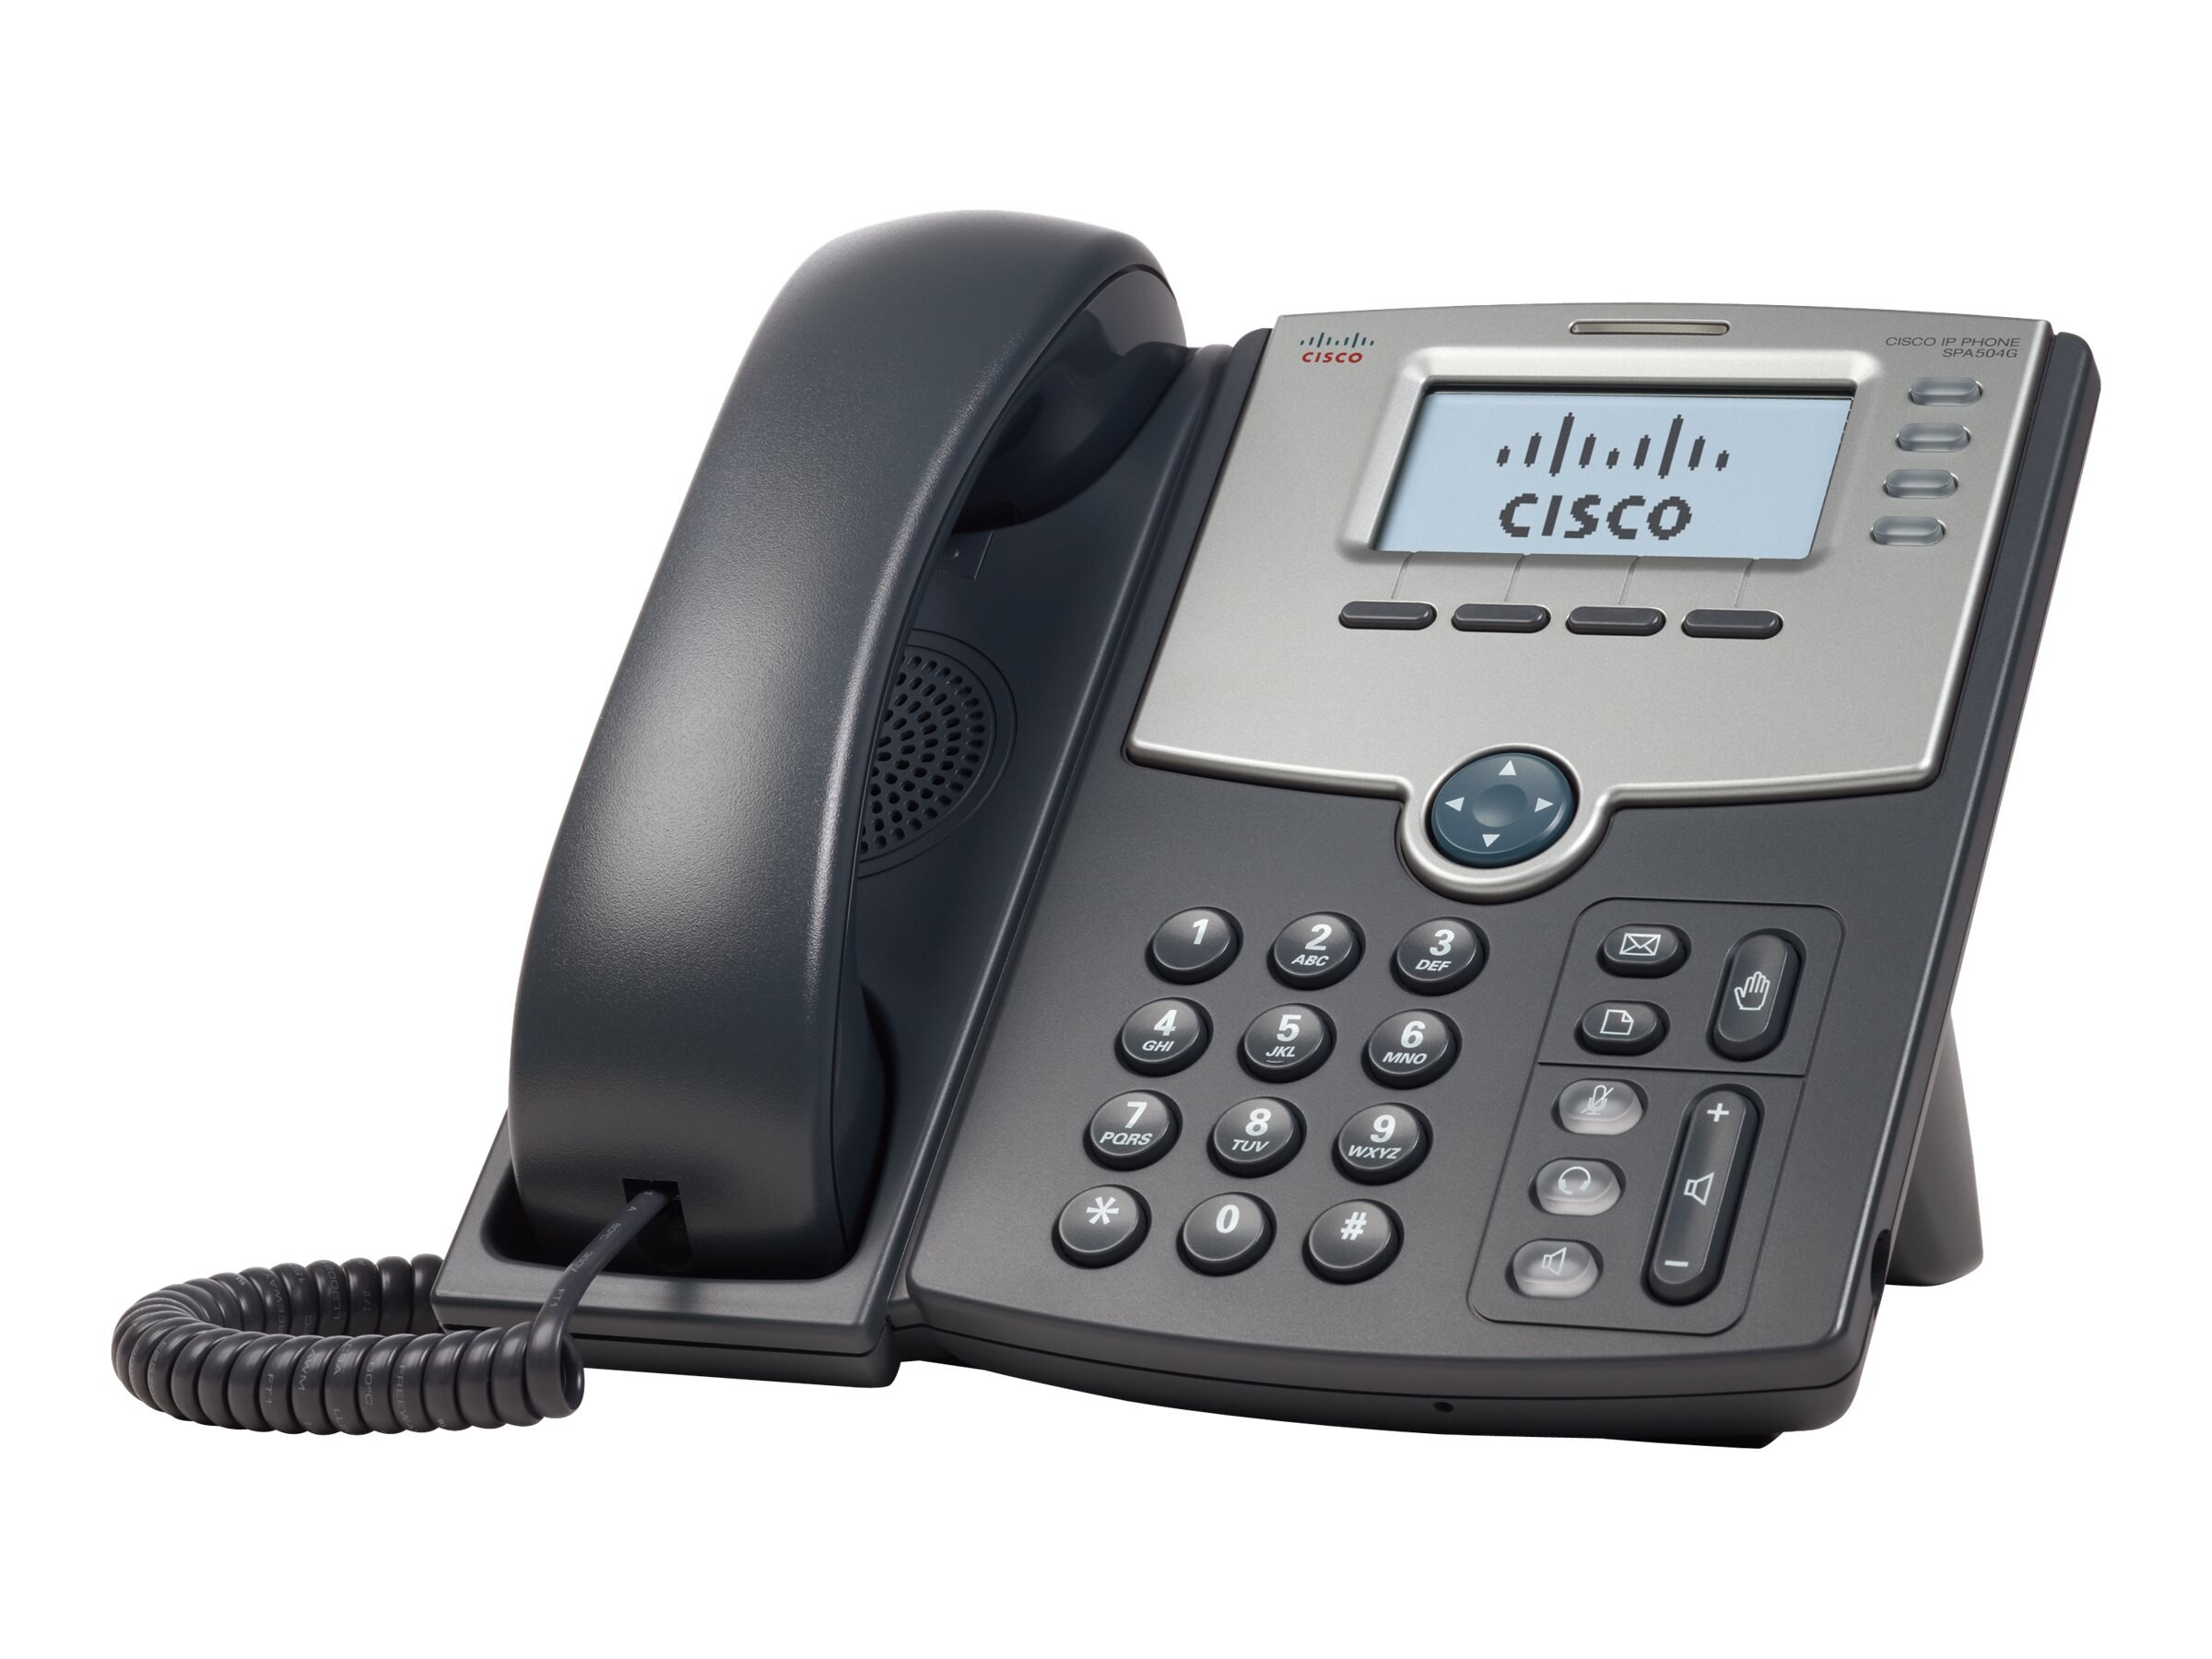 Cisco SPA504G 4-Line IP Phone with 2-Port Switch, PoE and LCD Display, SPA504G, 10081617, VoIP Phones